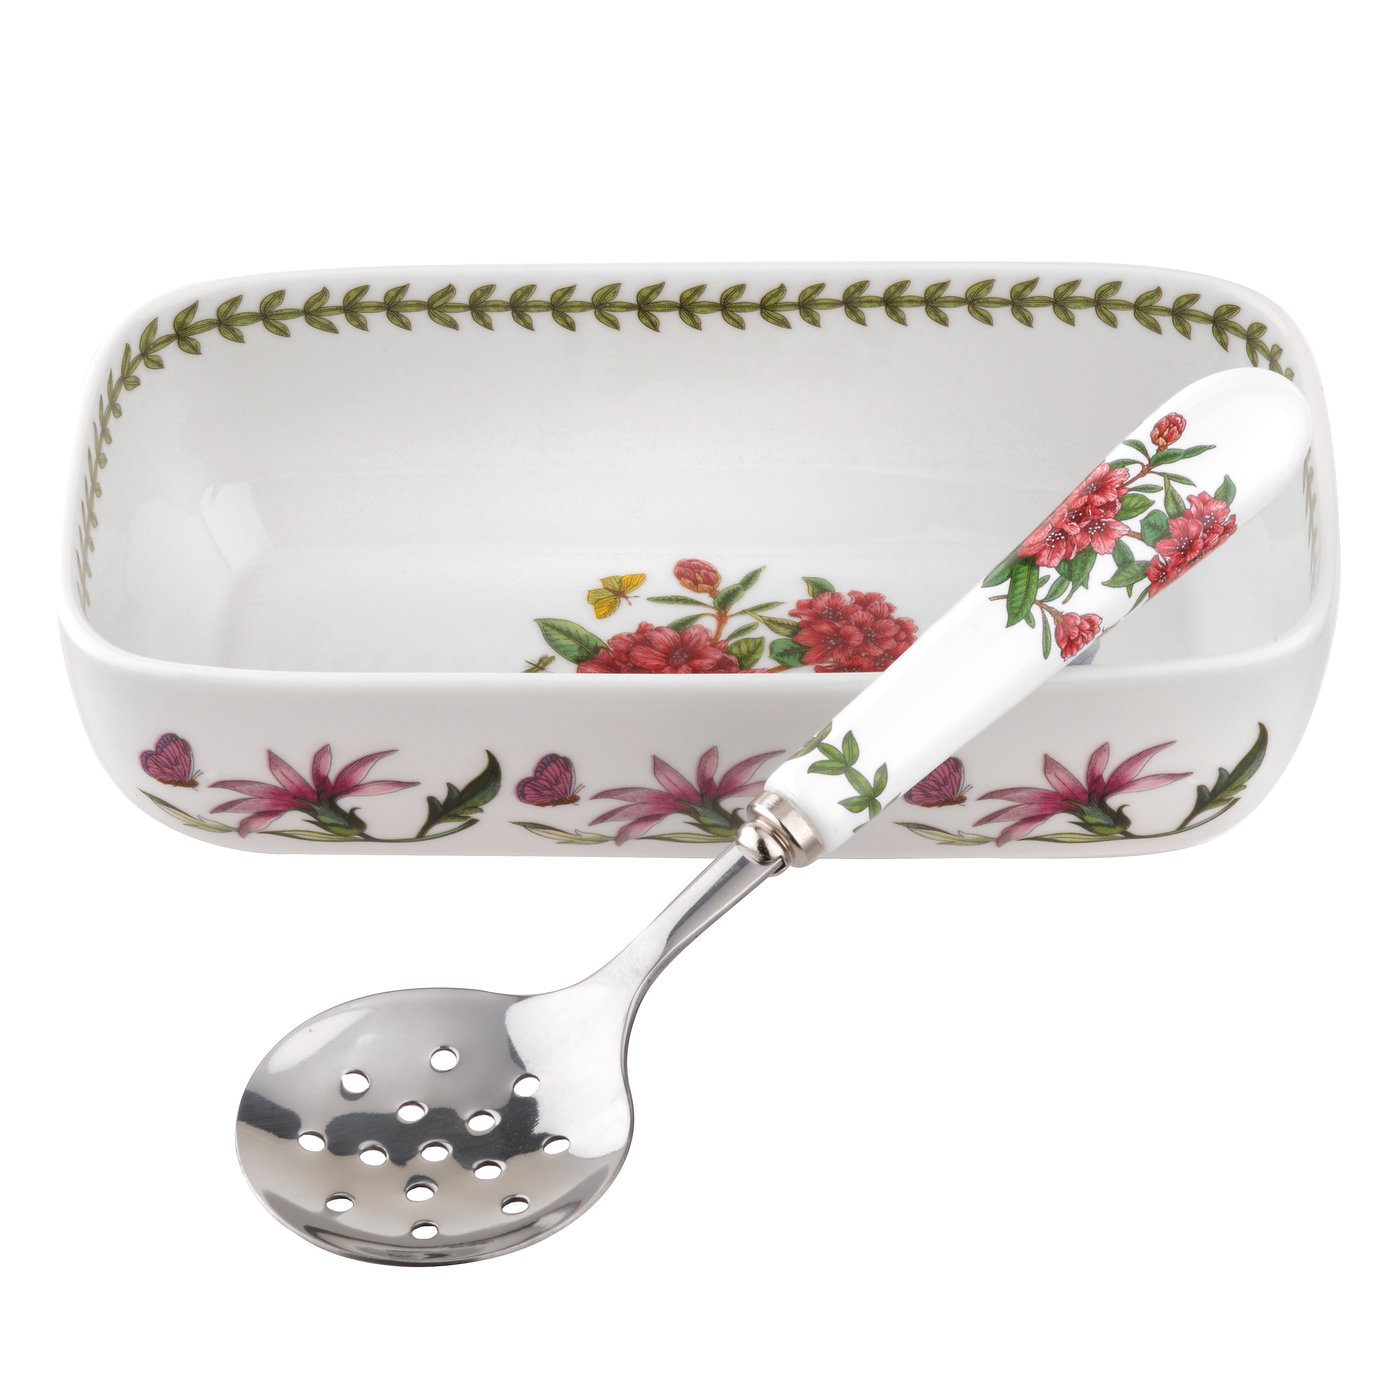 Botanic Garden Cranberry Dish with Slotted Spoon (Rhododendron) image number 0